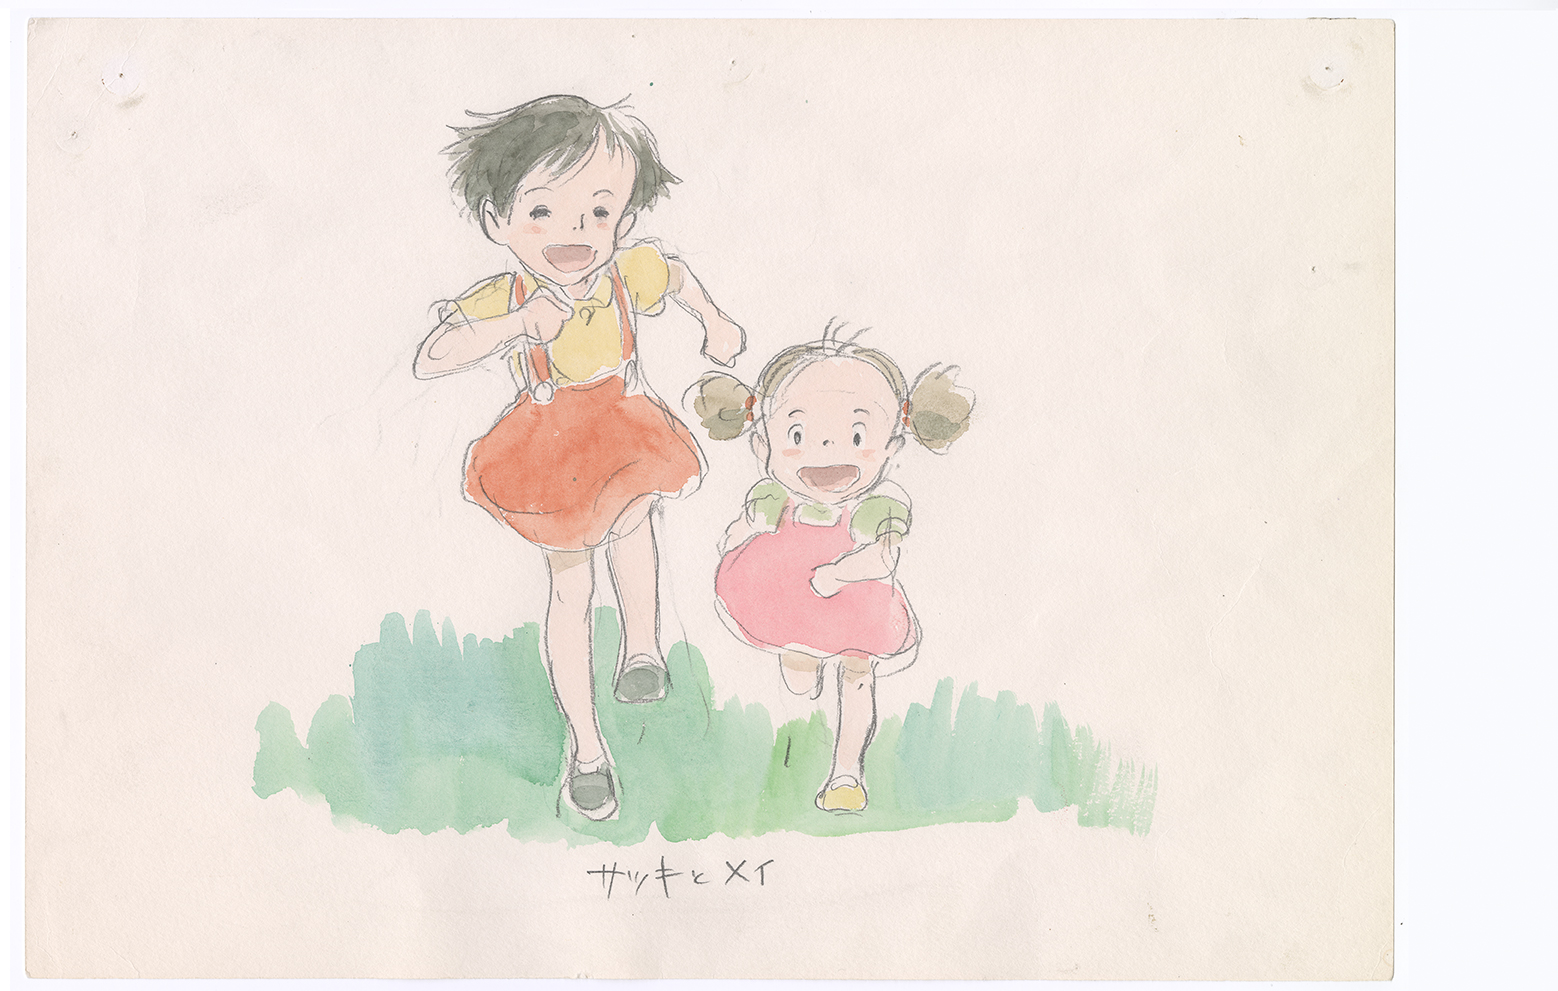 An imageboard from My Neighbor Totoro, which looks like a sketch of the sisters running towards the viewer